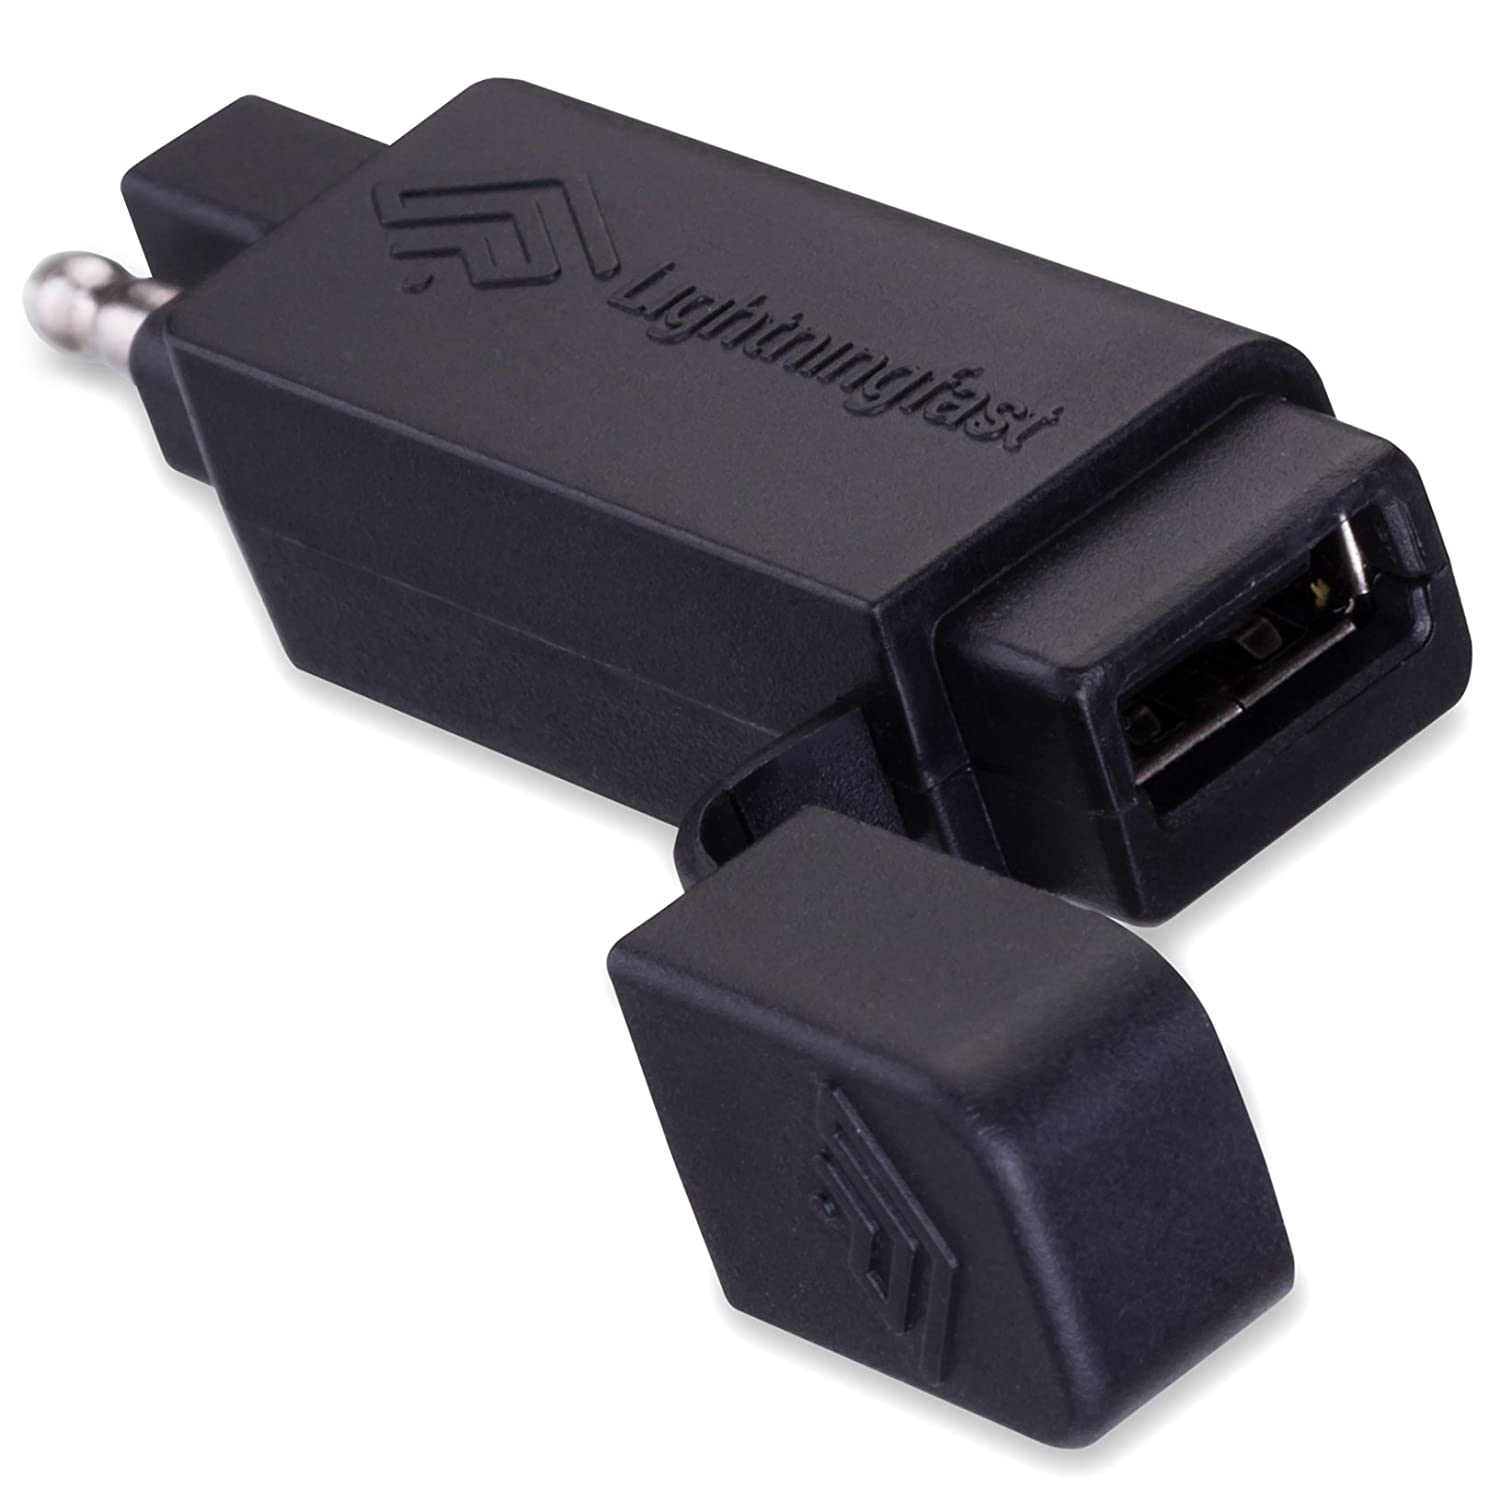 Amazon.com: SAE To USB Adapter - Motorcycle Quick Disconnect Plug ...